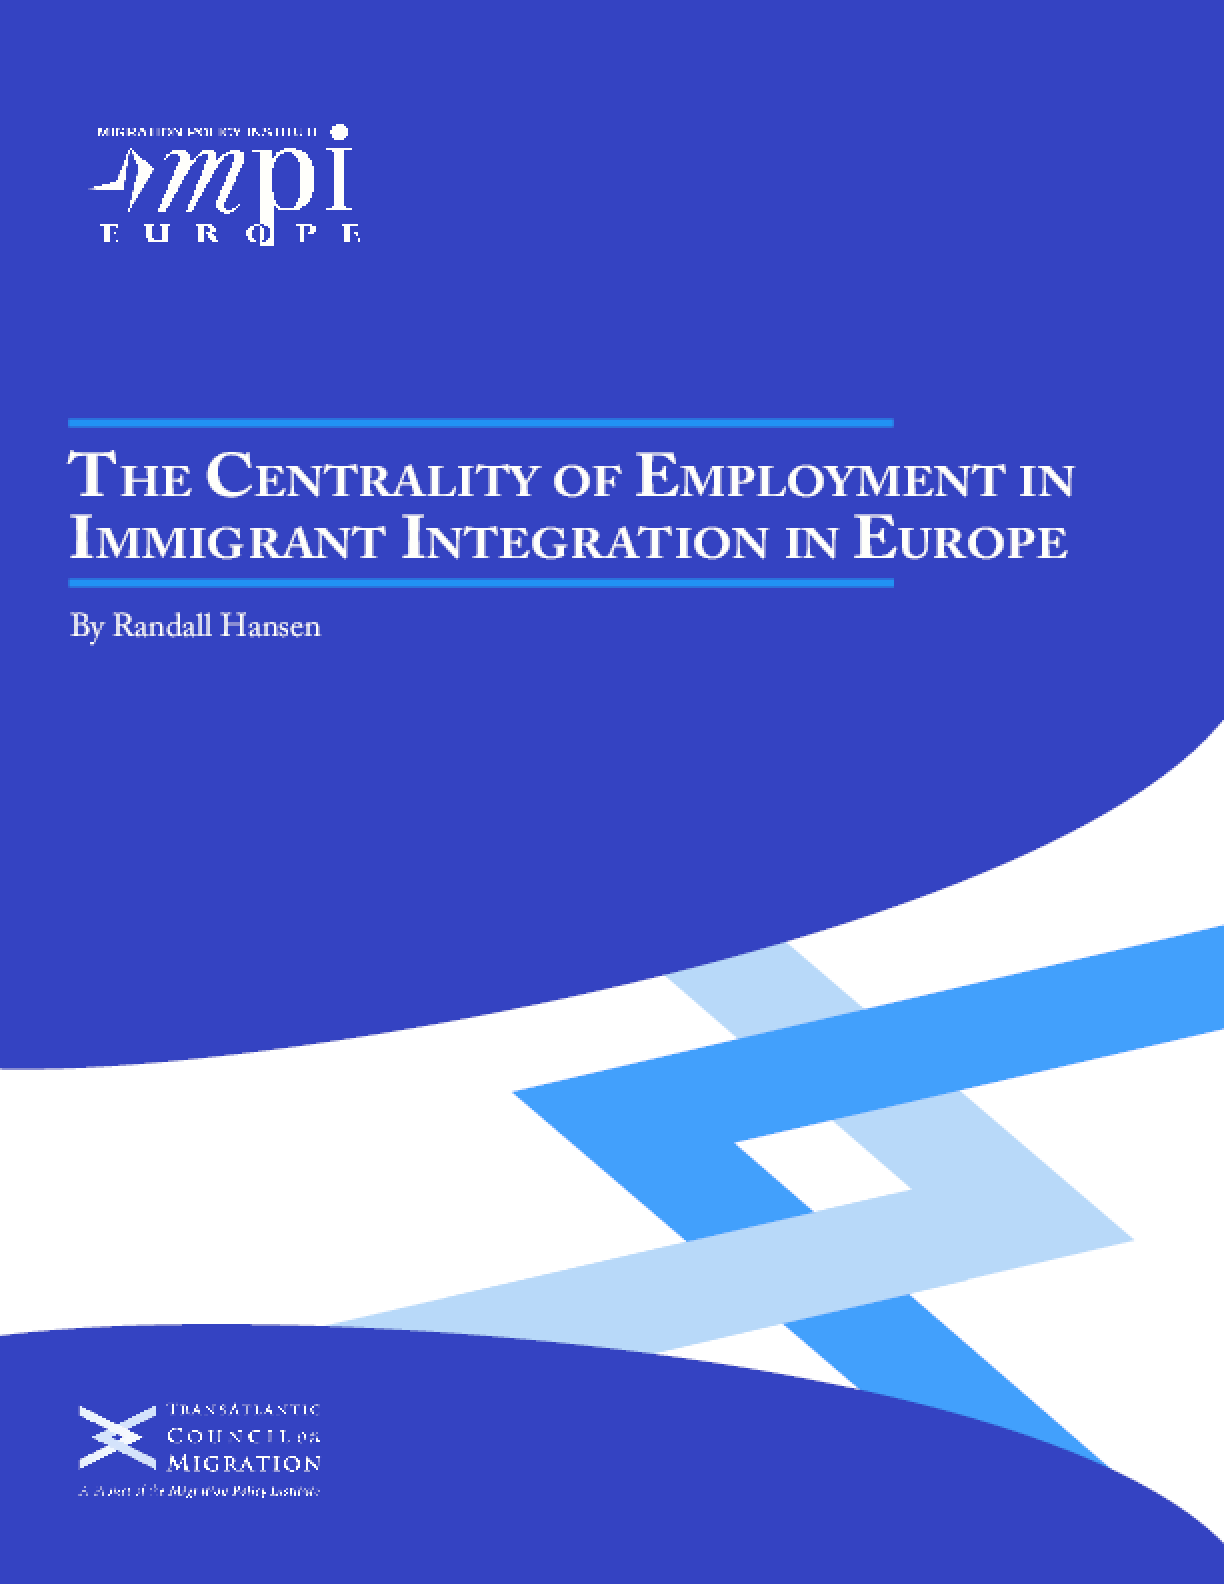 The Centrality of Employment in Immigrant Integration in Europe